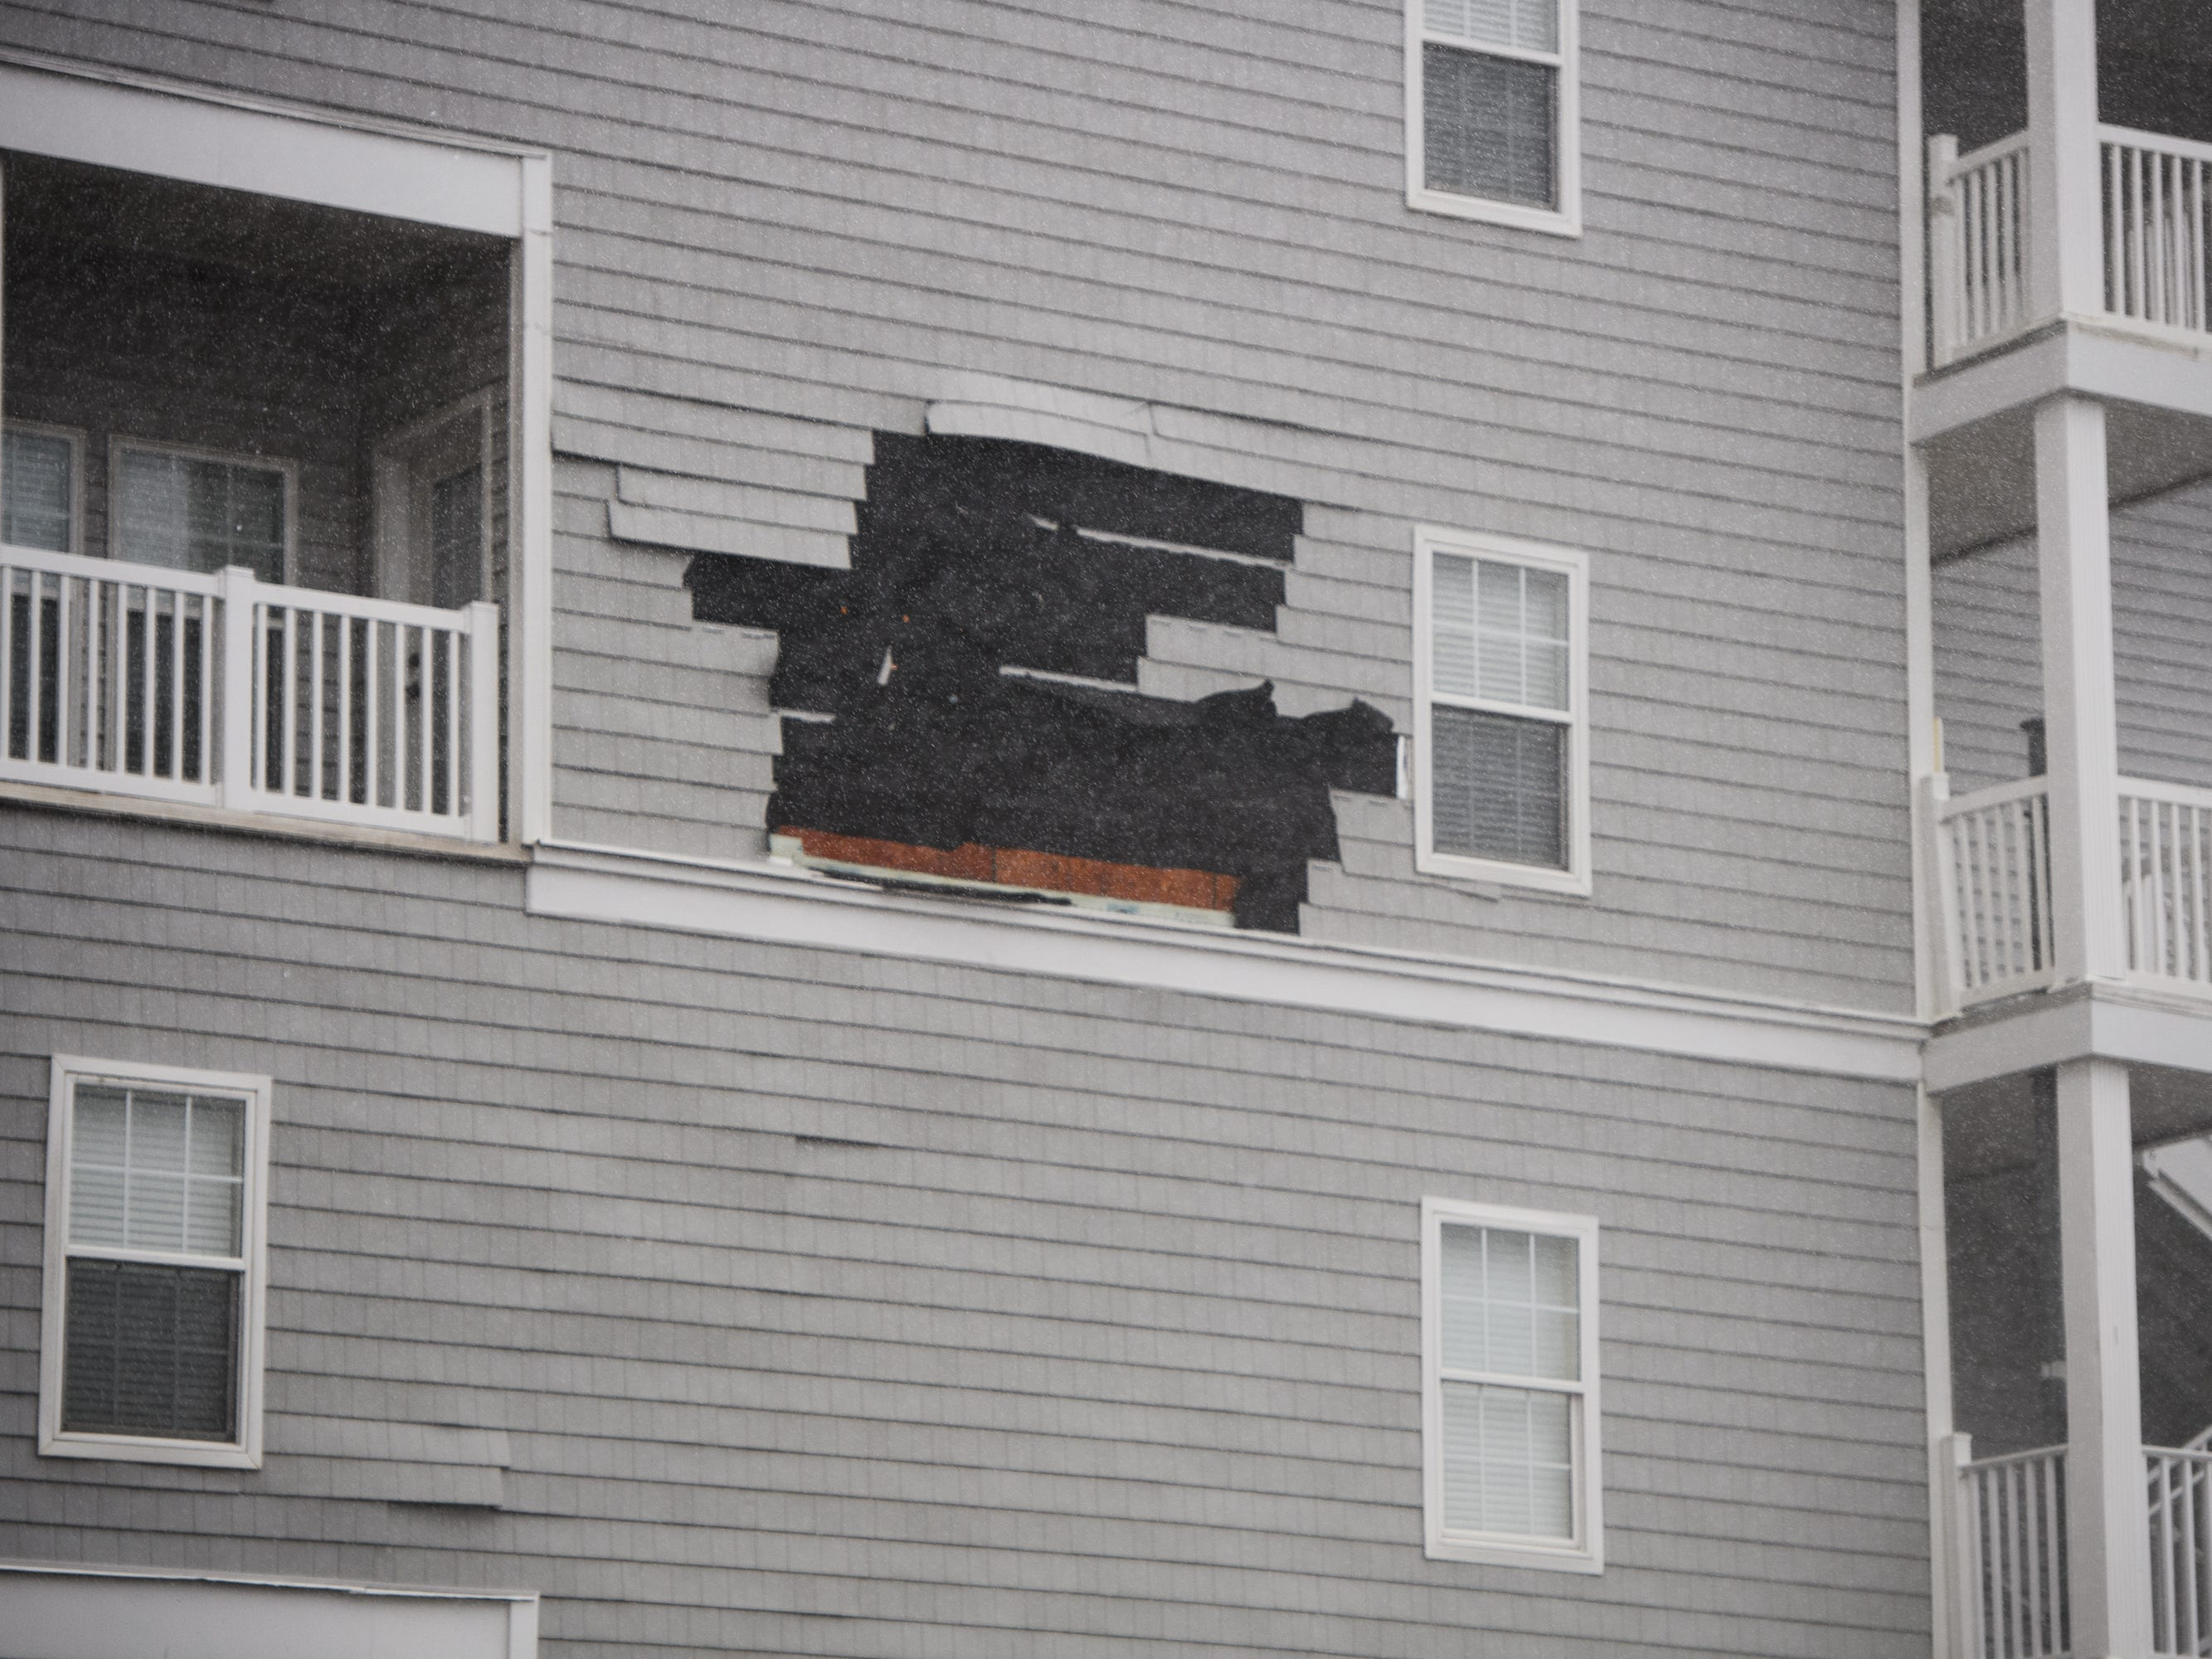 The siding of a structure begins to peel off as wind speeds dramatically increase from Hurricane Florence in North Myrtle Beach on Friday, Sept. 14, 2018.